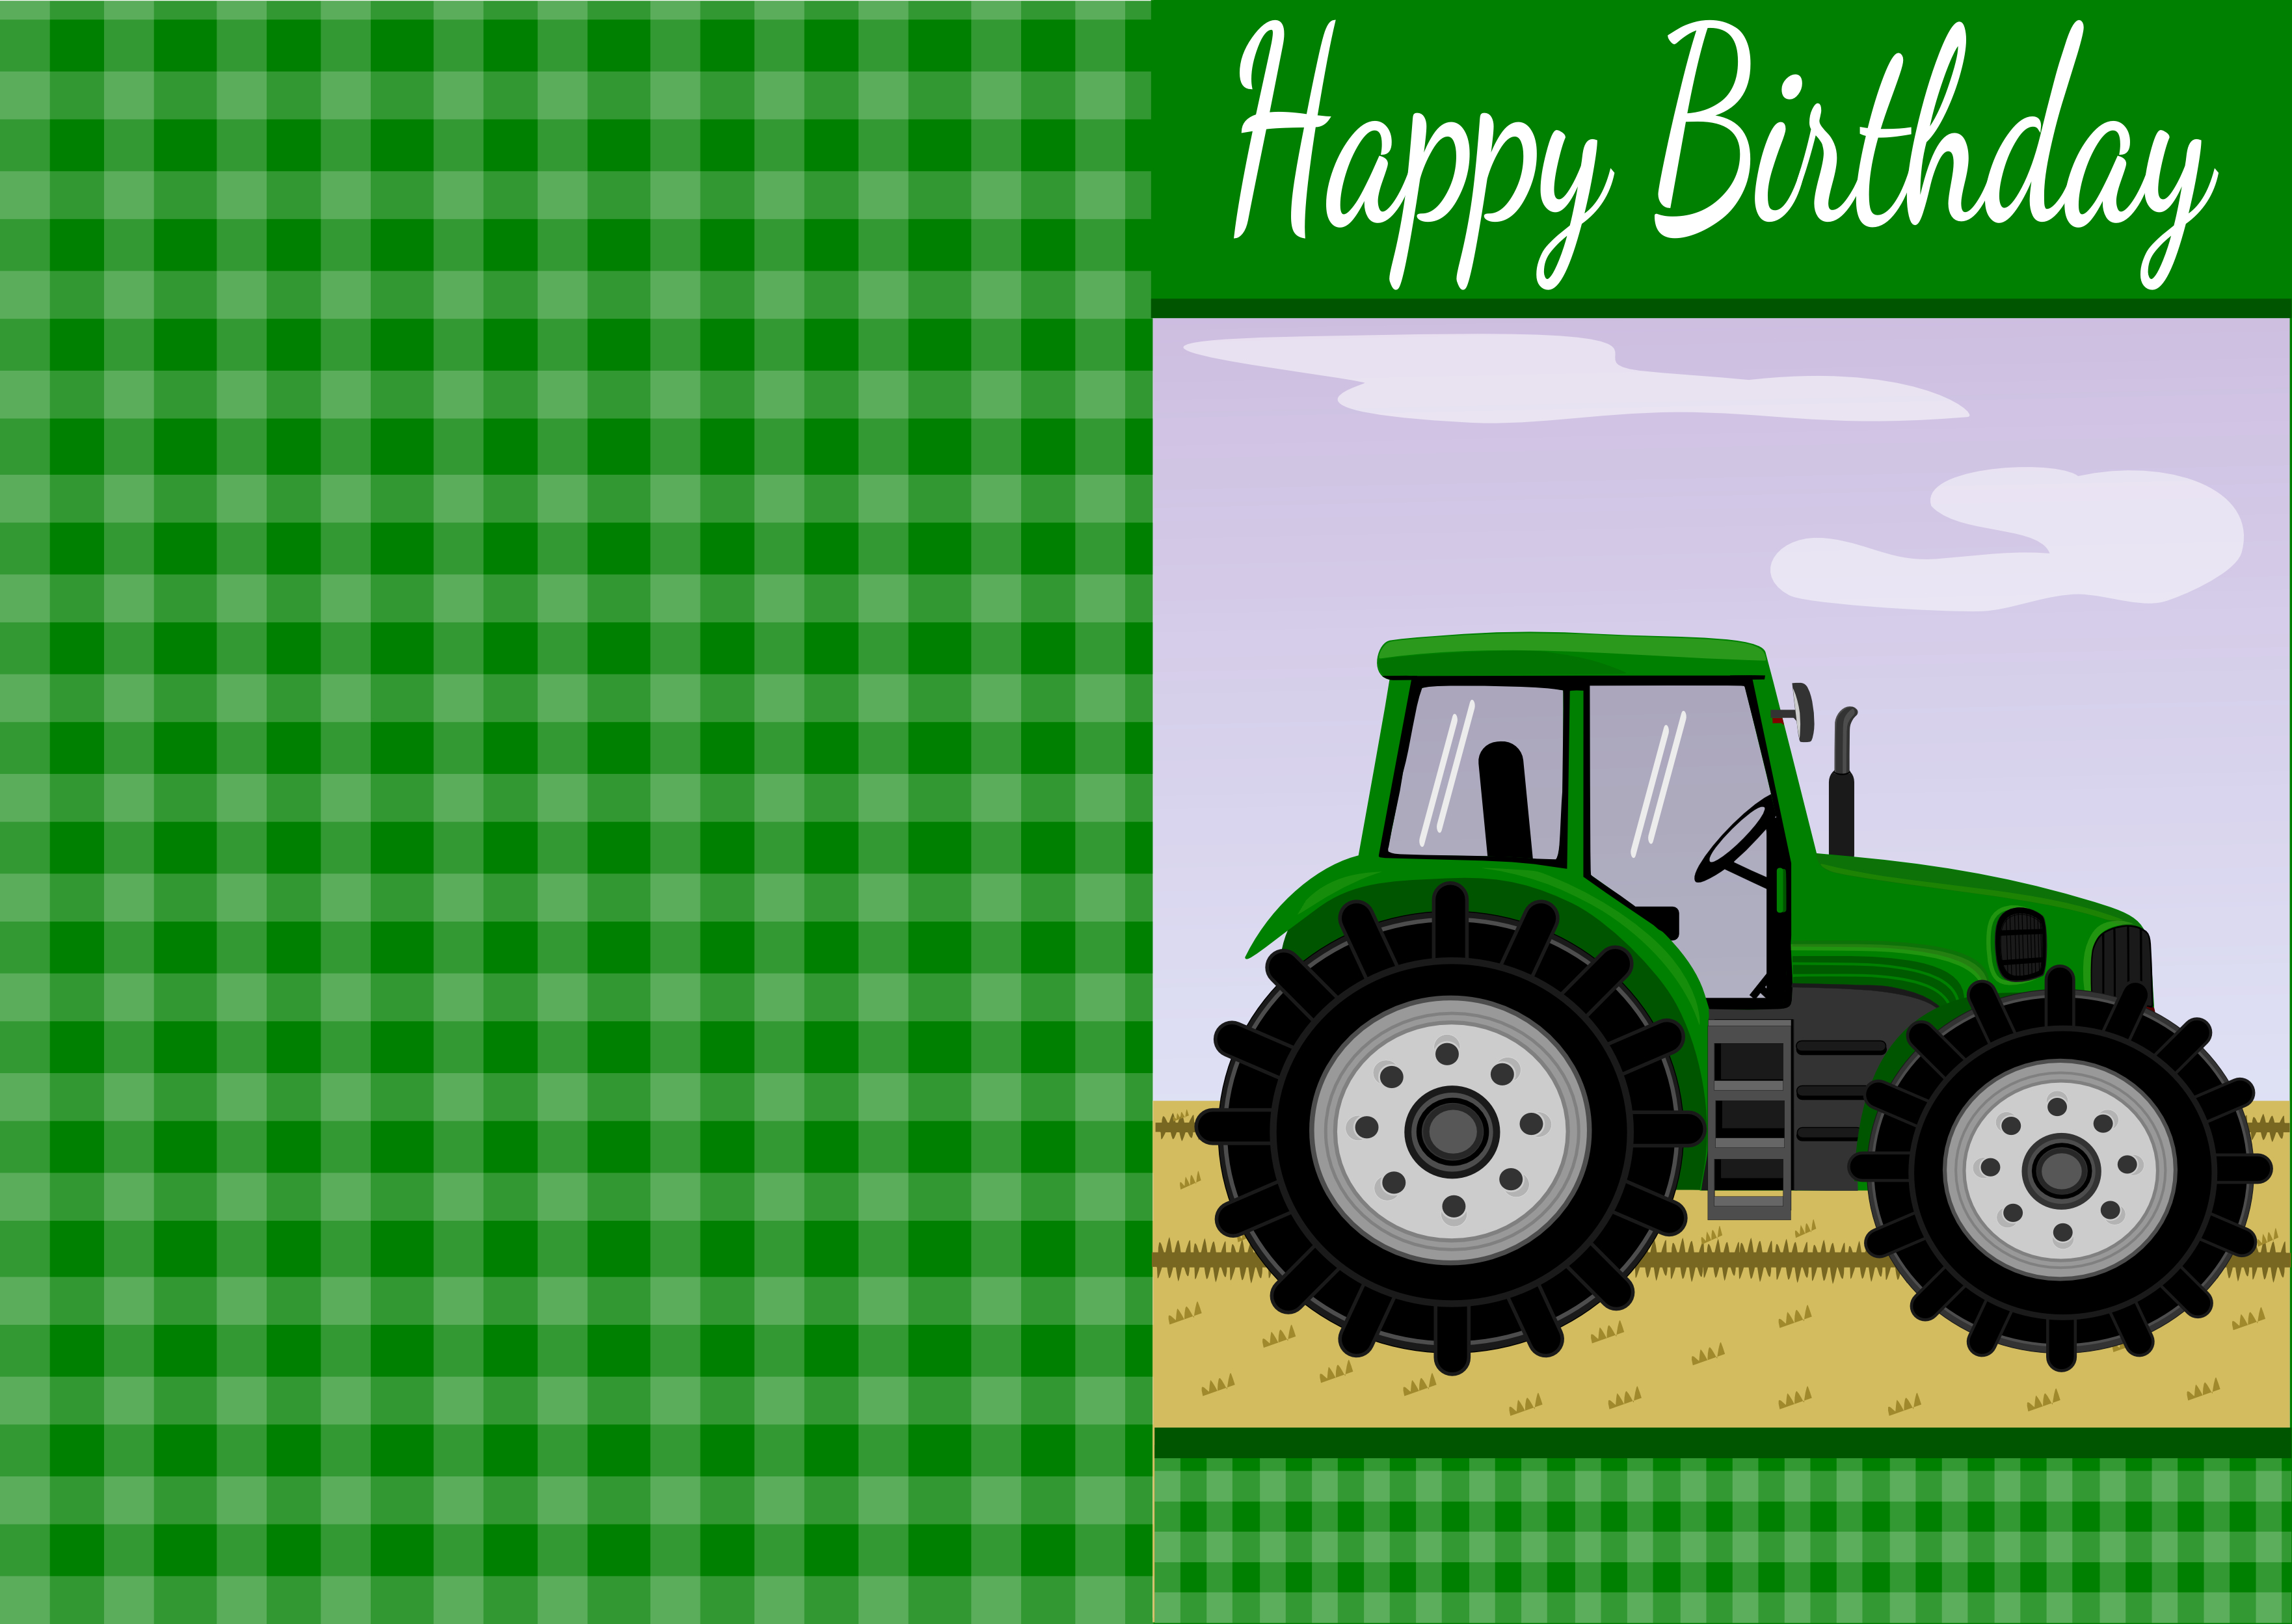 Printable Cards | Party Ideas | Free Printable Birthday Cards, Free - Free Printable John Deere Food Labels